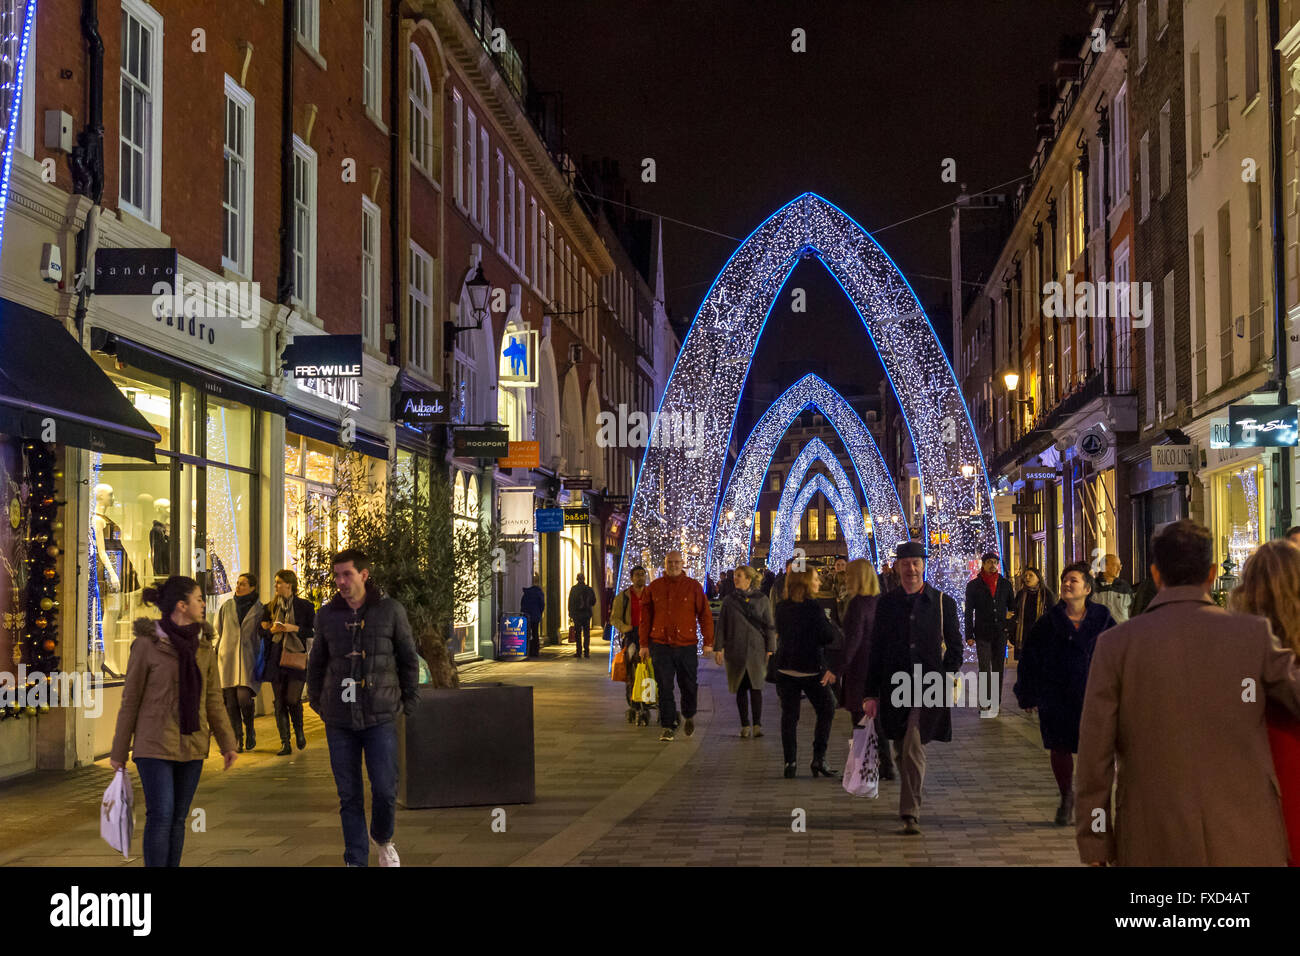 Christmas Lights  in London with an illuminated blue Arch on South Molton Street , London - Stock Image